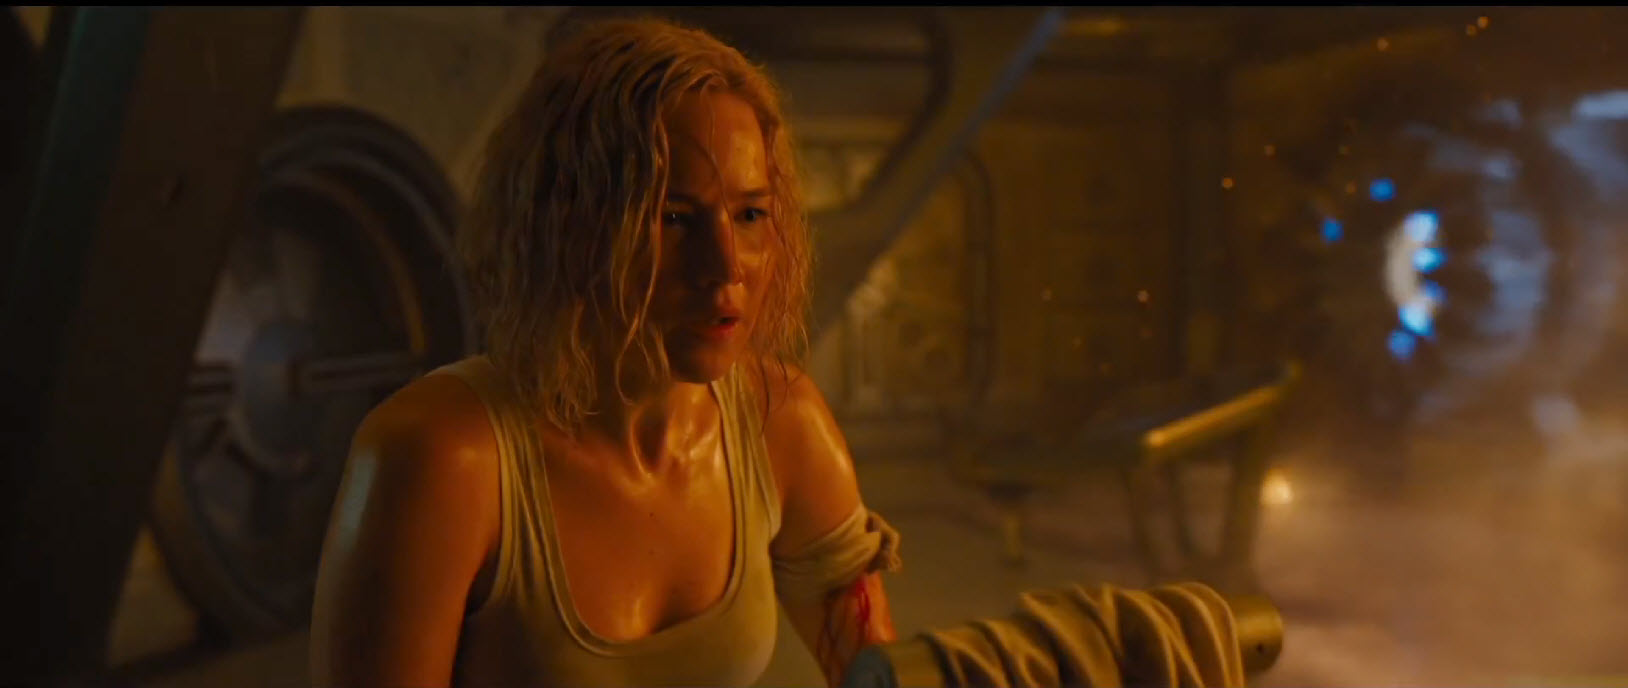 passengers jennifer lawrence sweaty